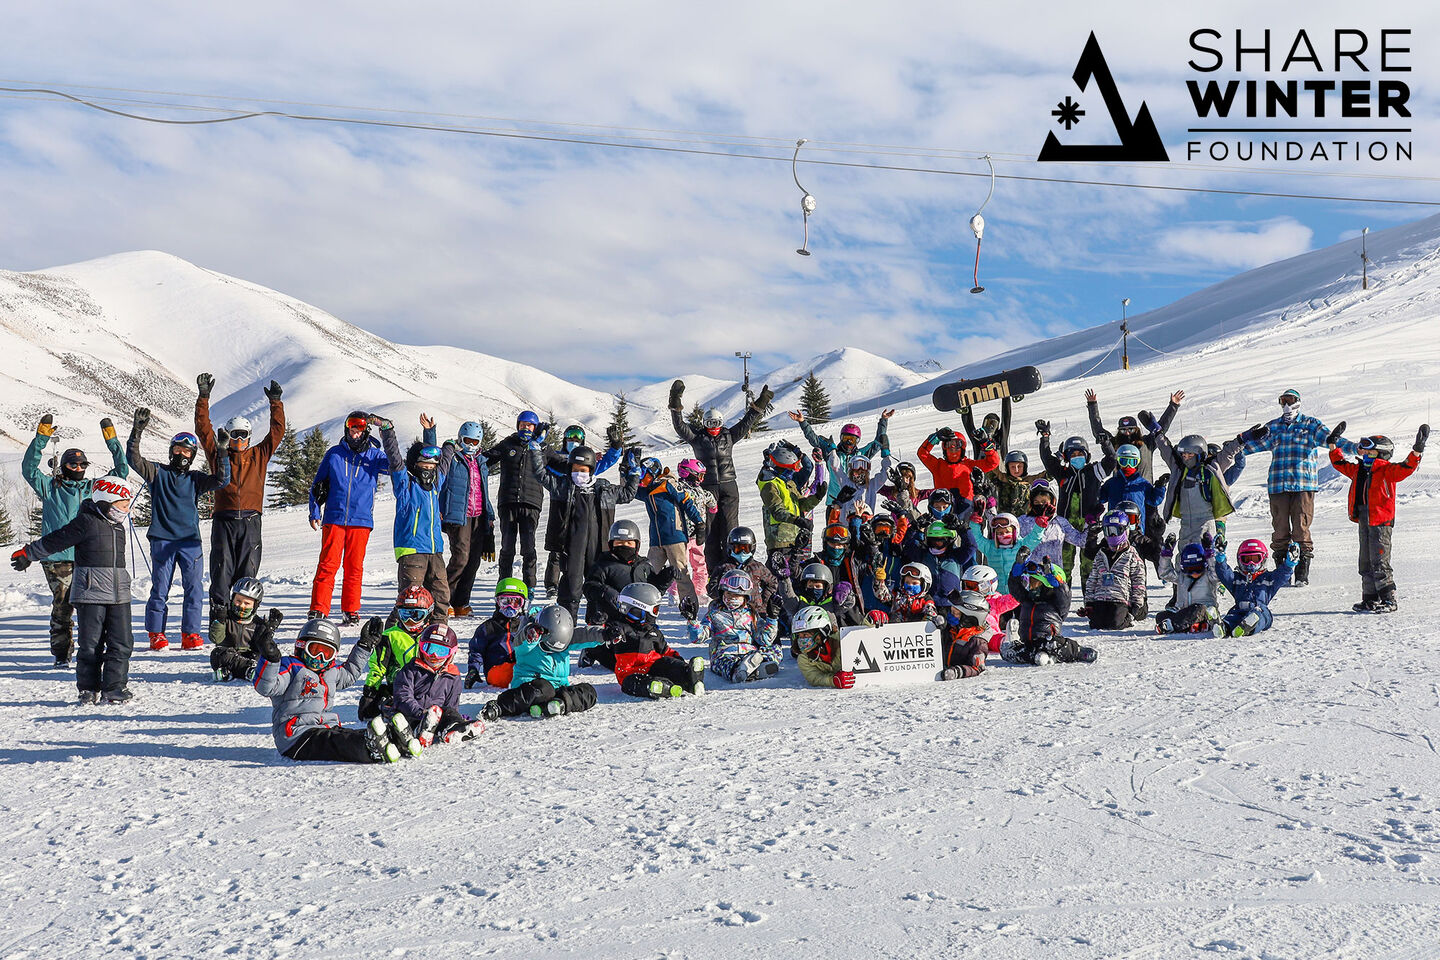 Group of skiers enjoying a day on the mountain